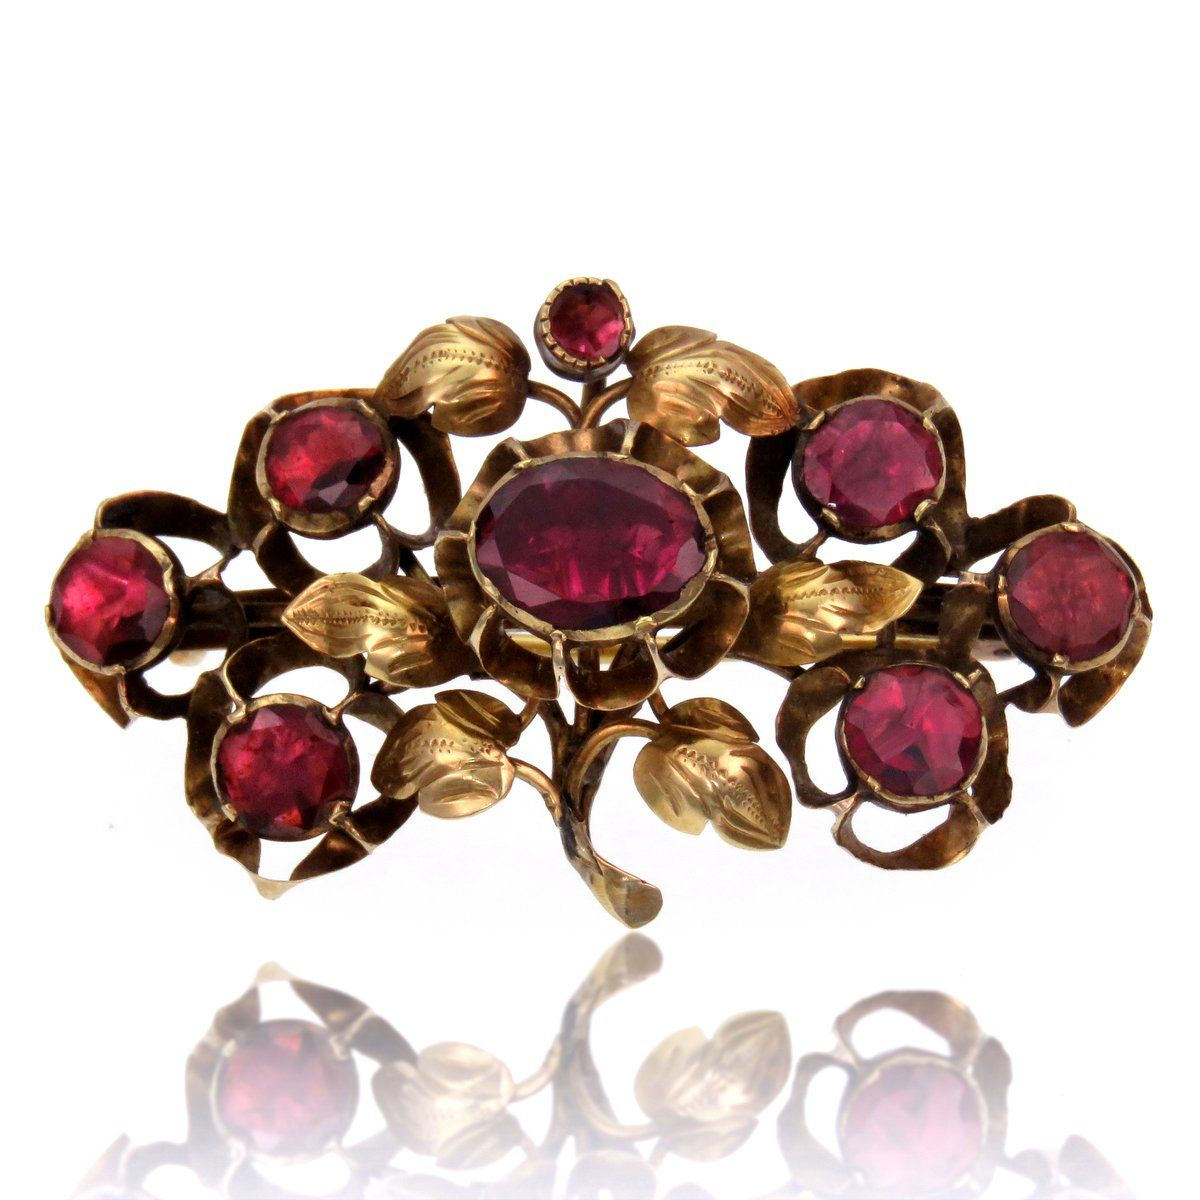 e000fd934e871 Garnet and 18k Gold Floral and Leaf Motif Brooch in 2019 | The Curio ...